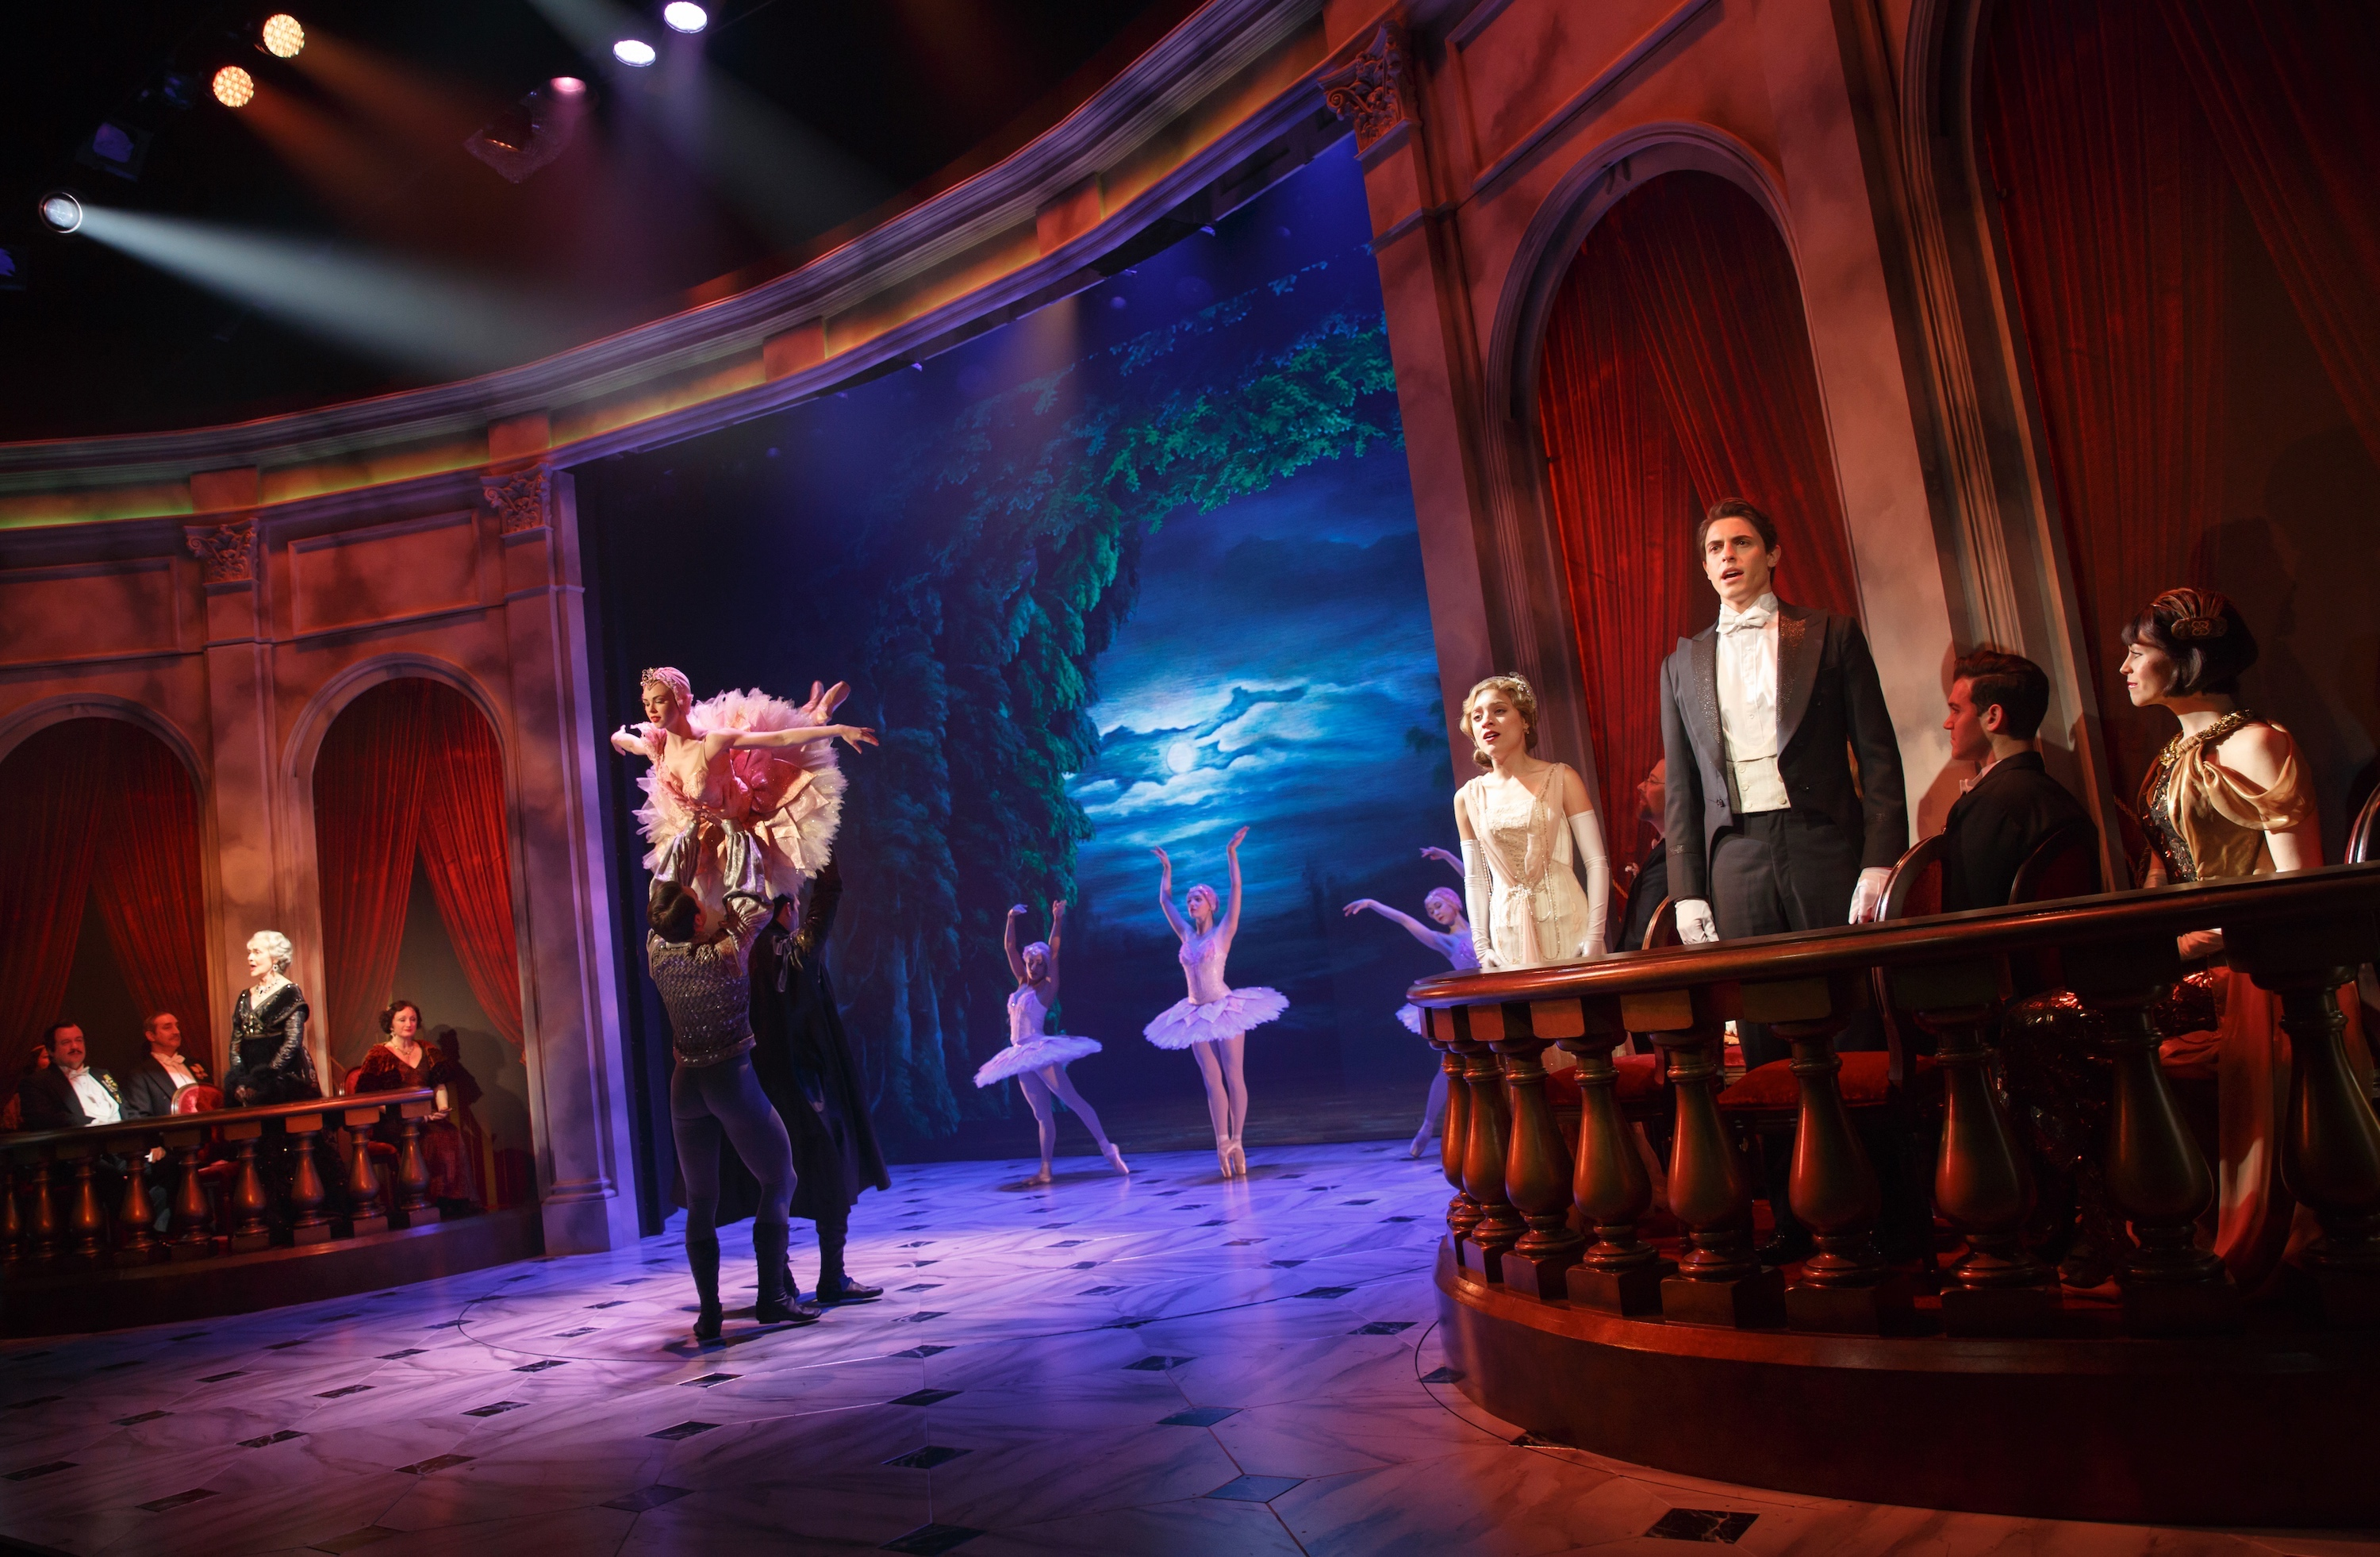 New musical anastasia in world premiere at hartford stage company